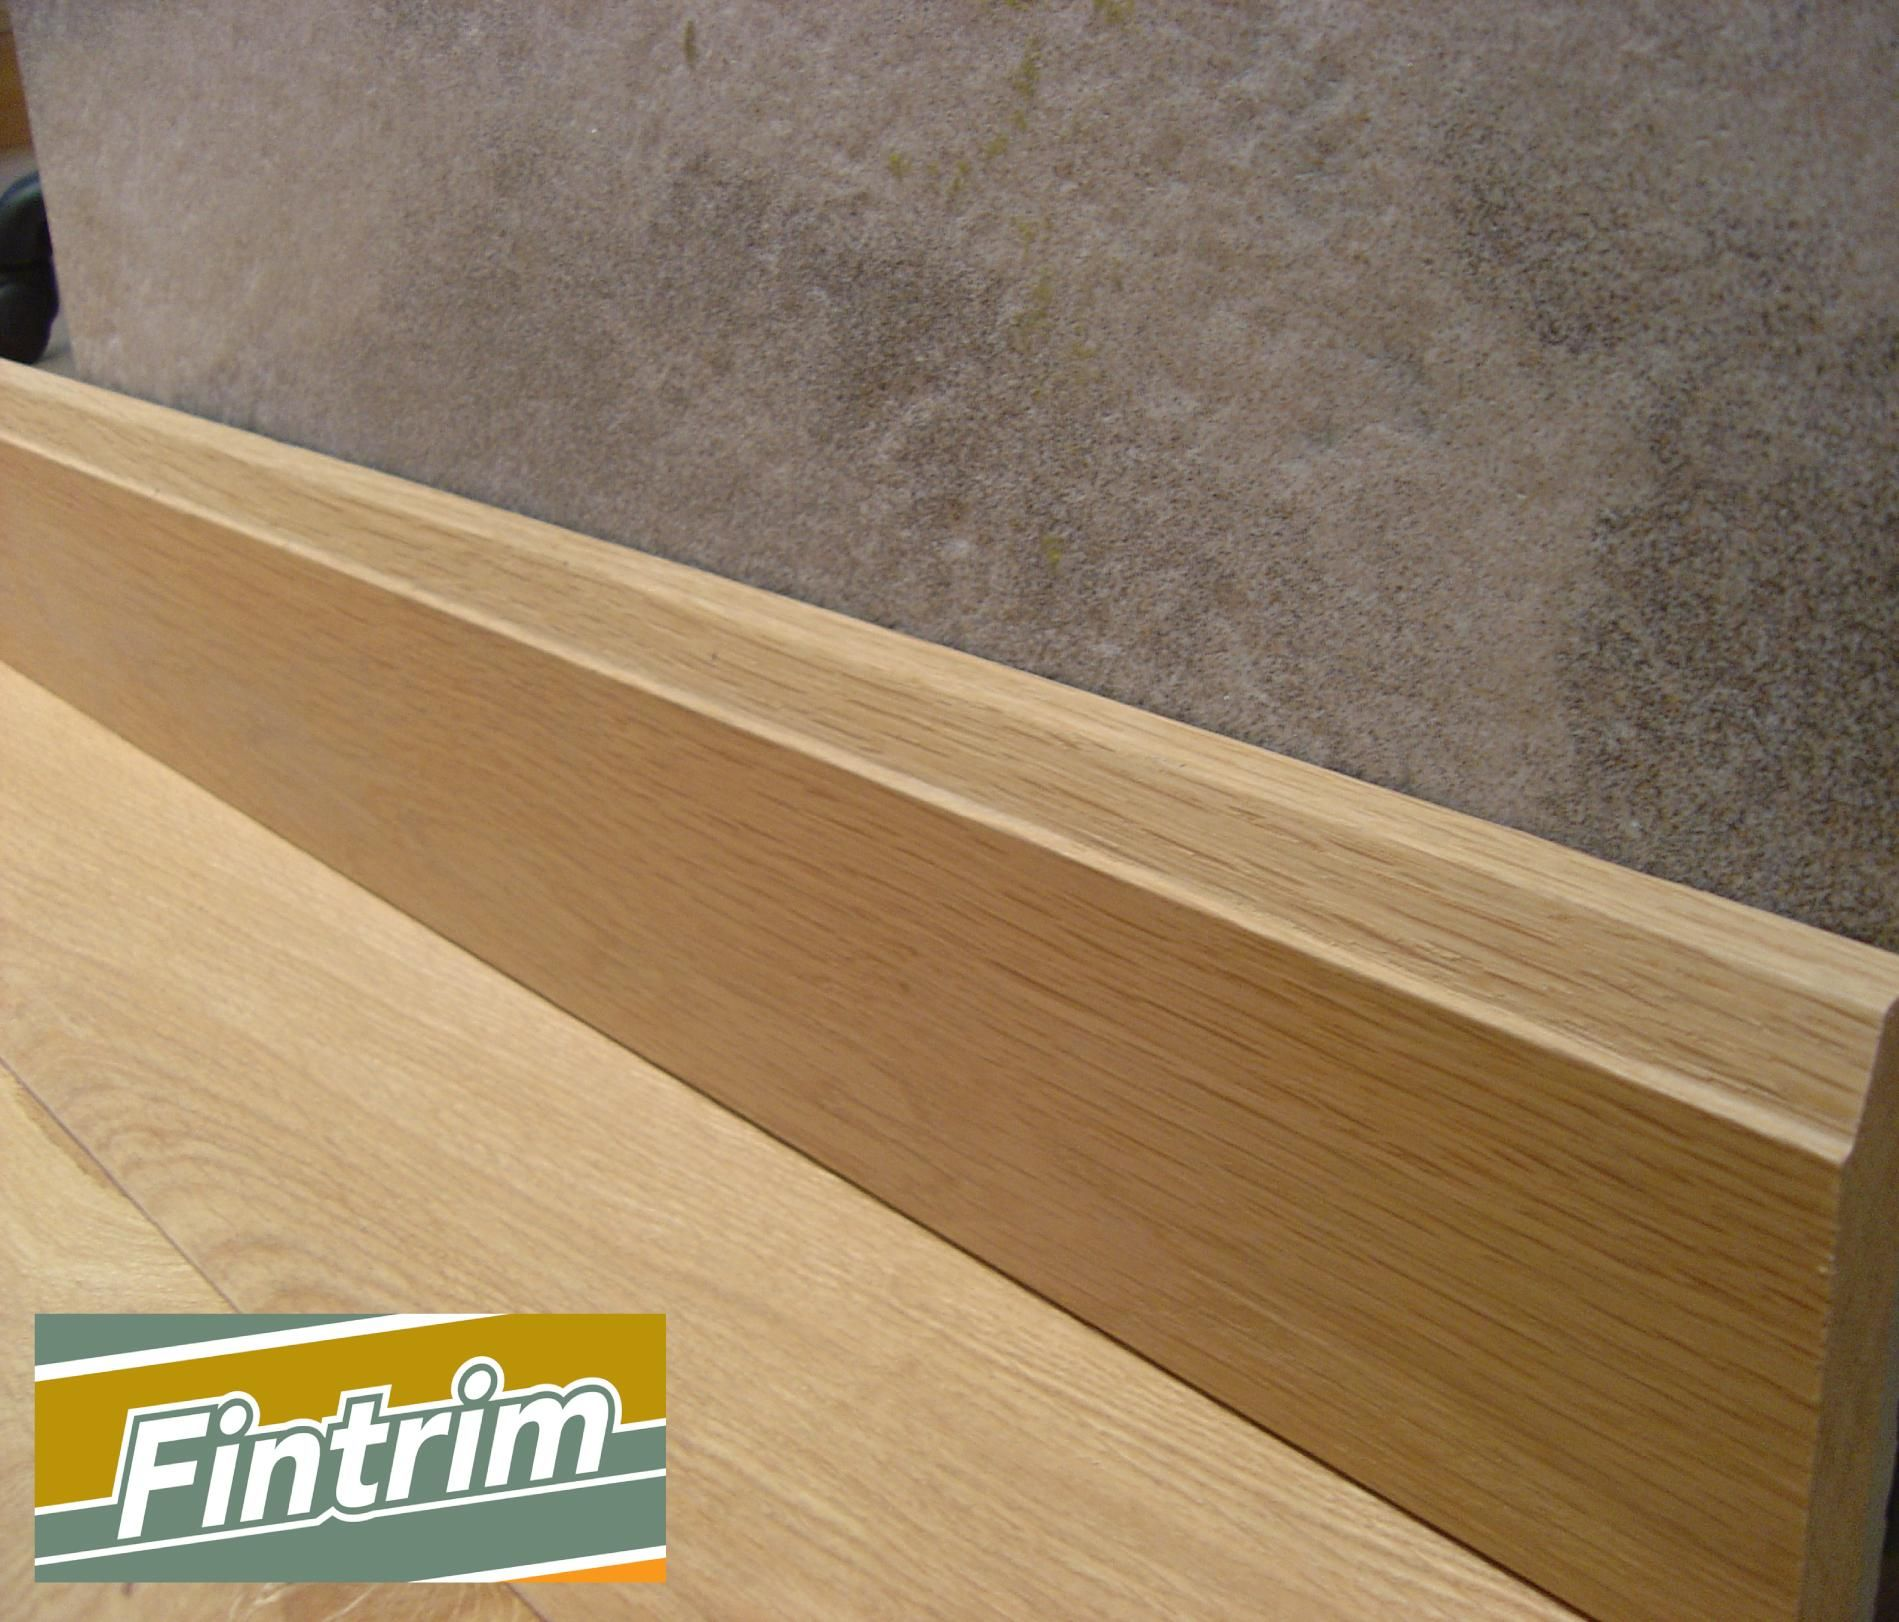 Hardwood skirting boards in chamfer finish woodwork for Hardwood skirting